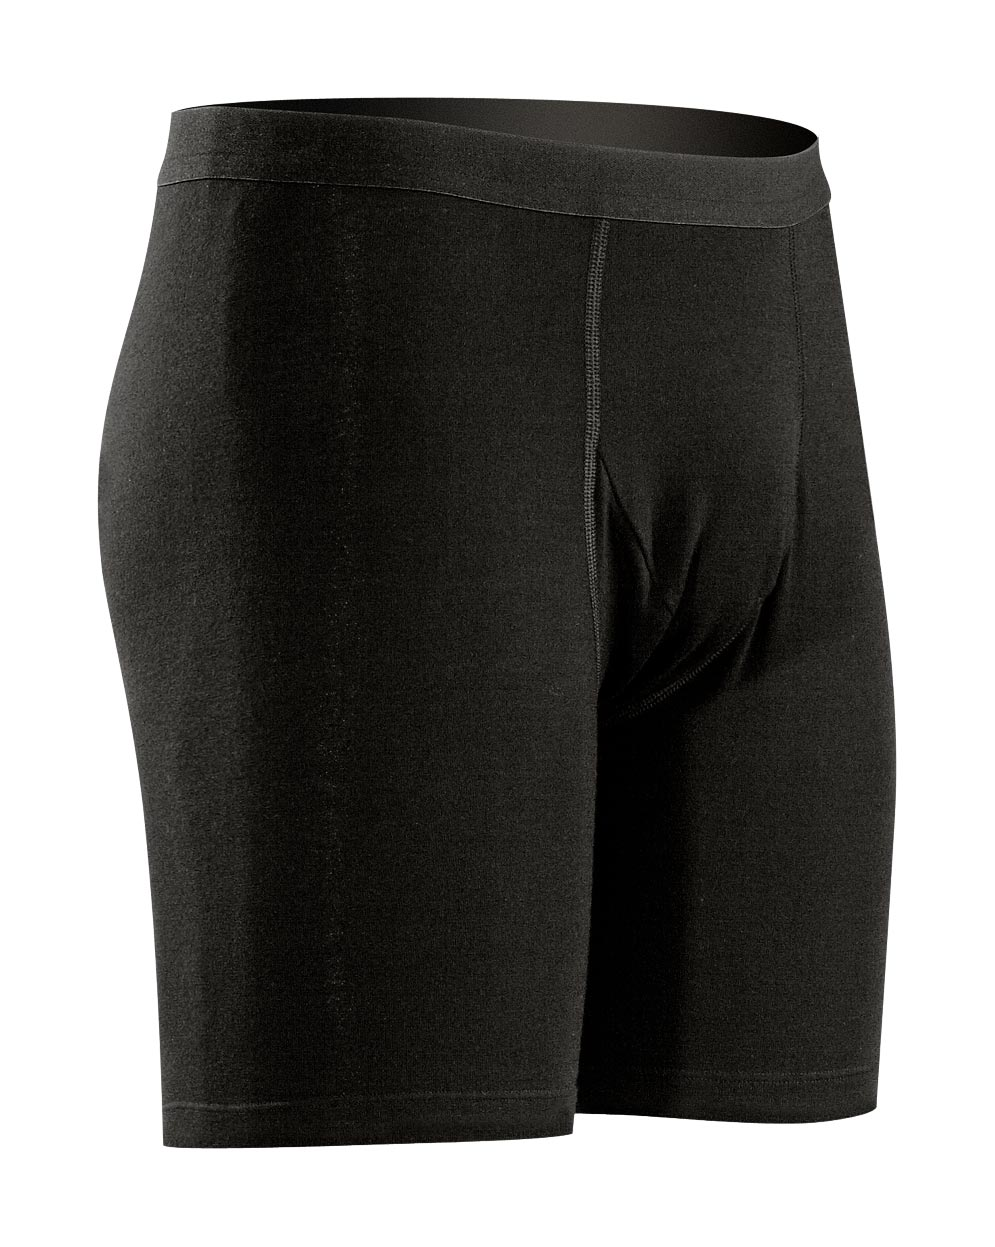 Arcteryx Men Black Eon SLW Boxer